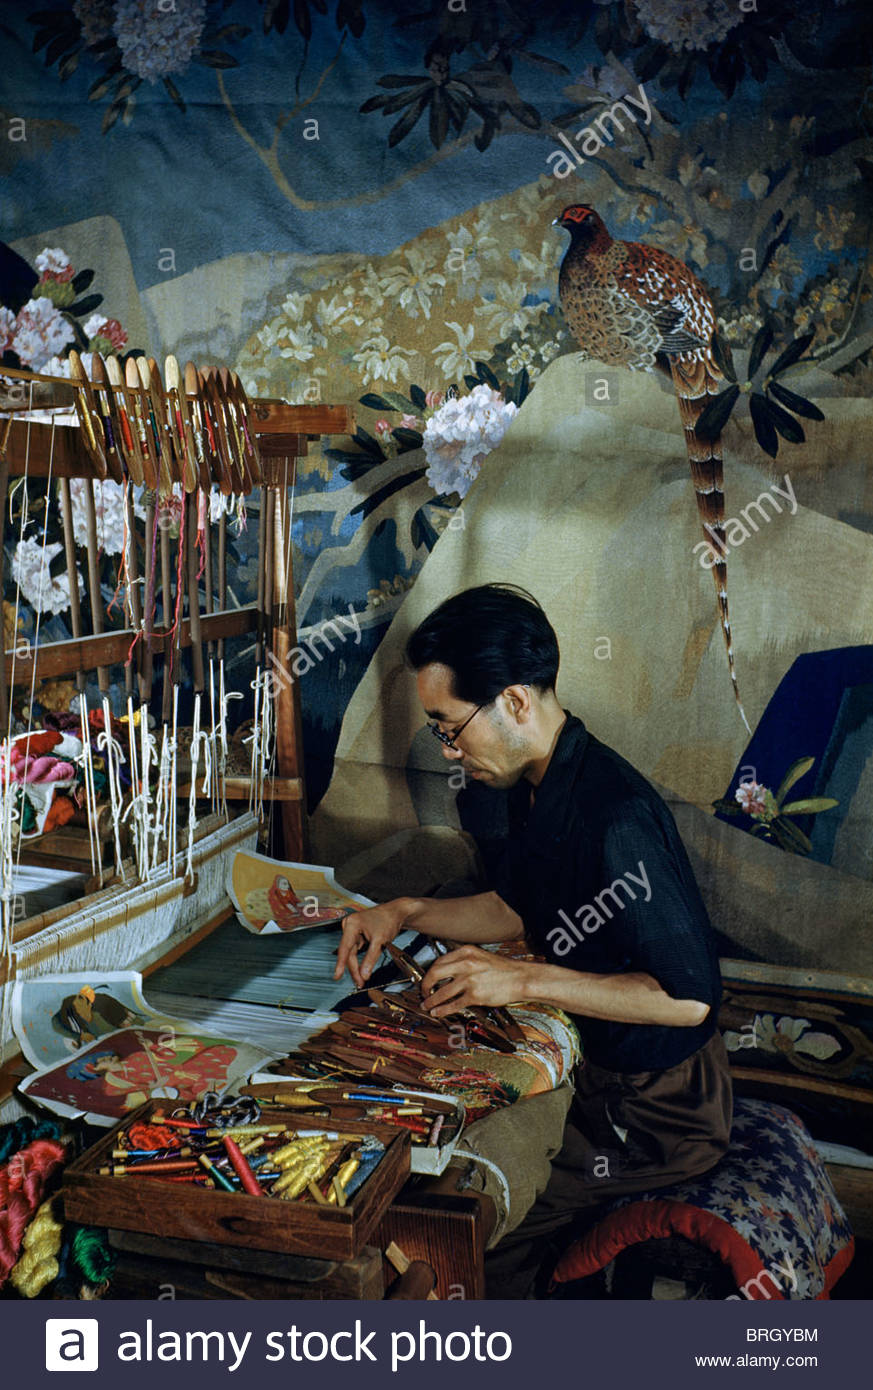 An artist hand-weaves a silk tapestry. - Stock Image